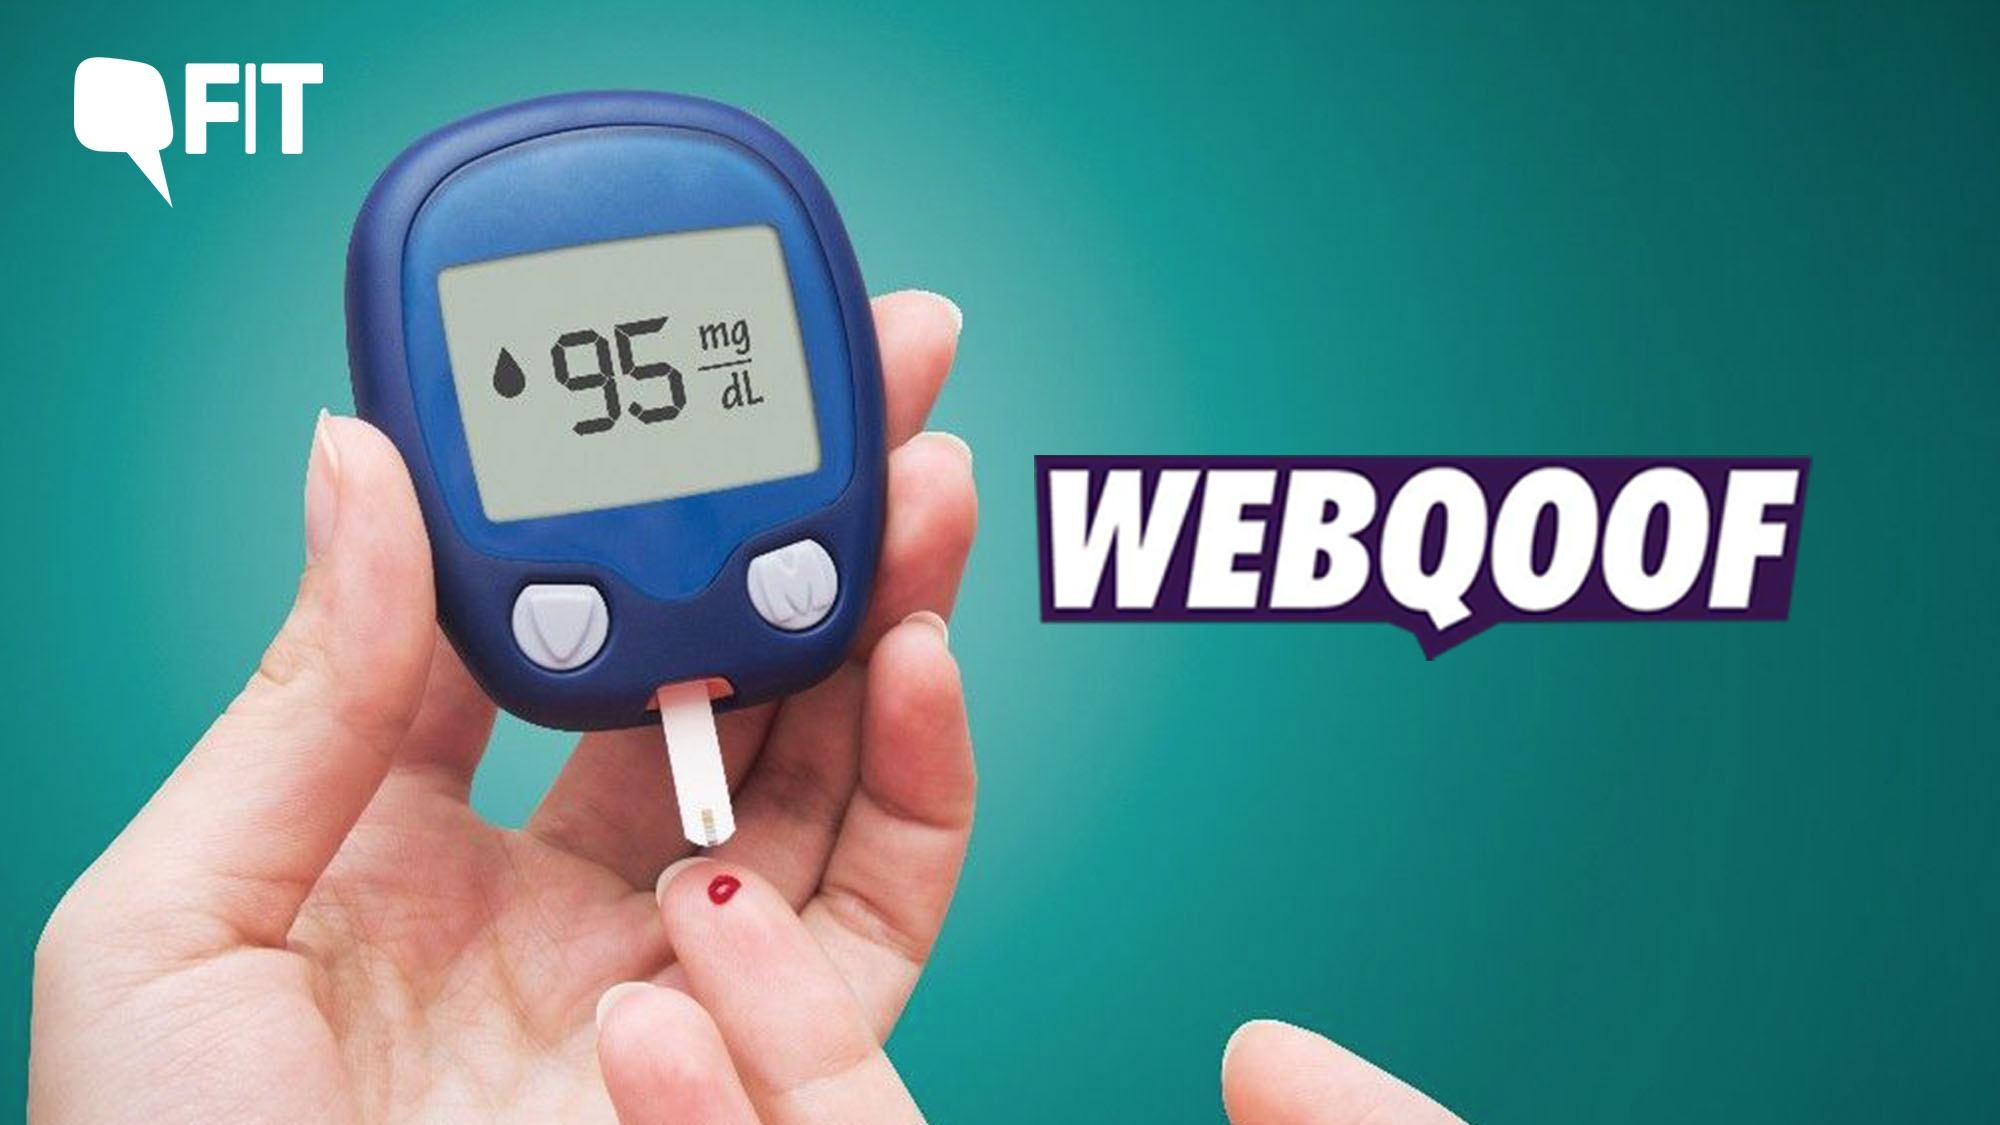 FIT WebQoof: Is It Possible to Cure Diabetes in Two Days?